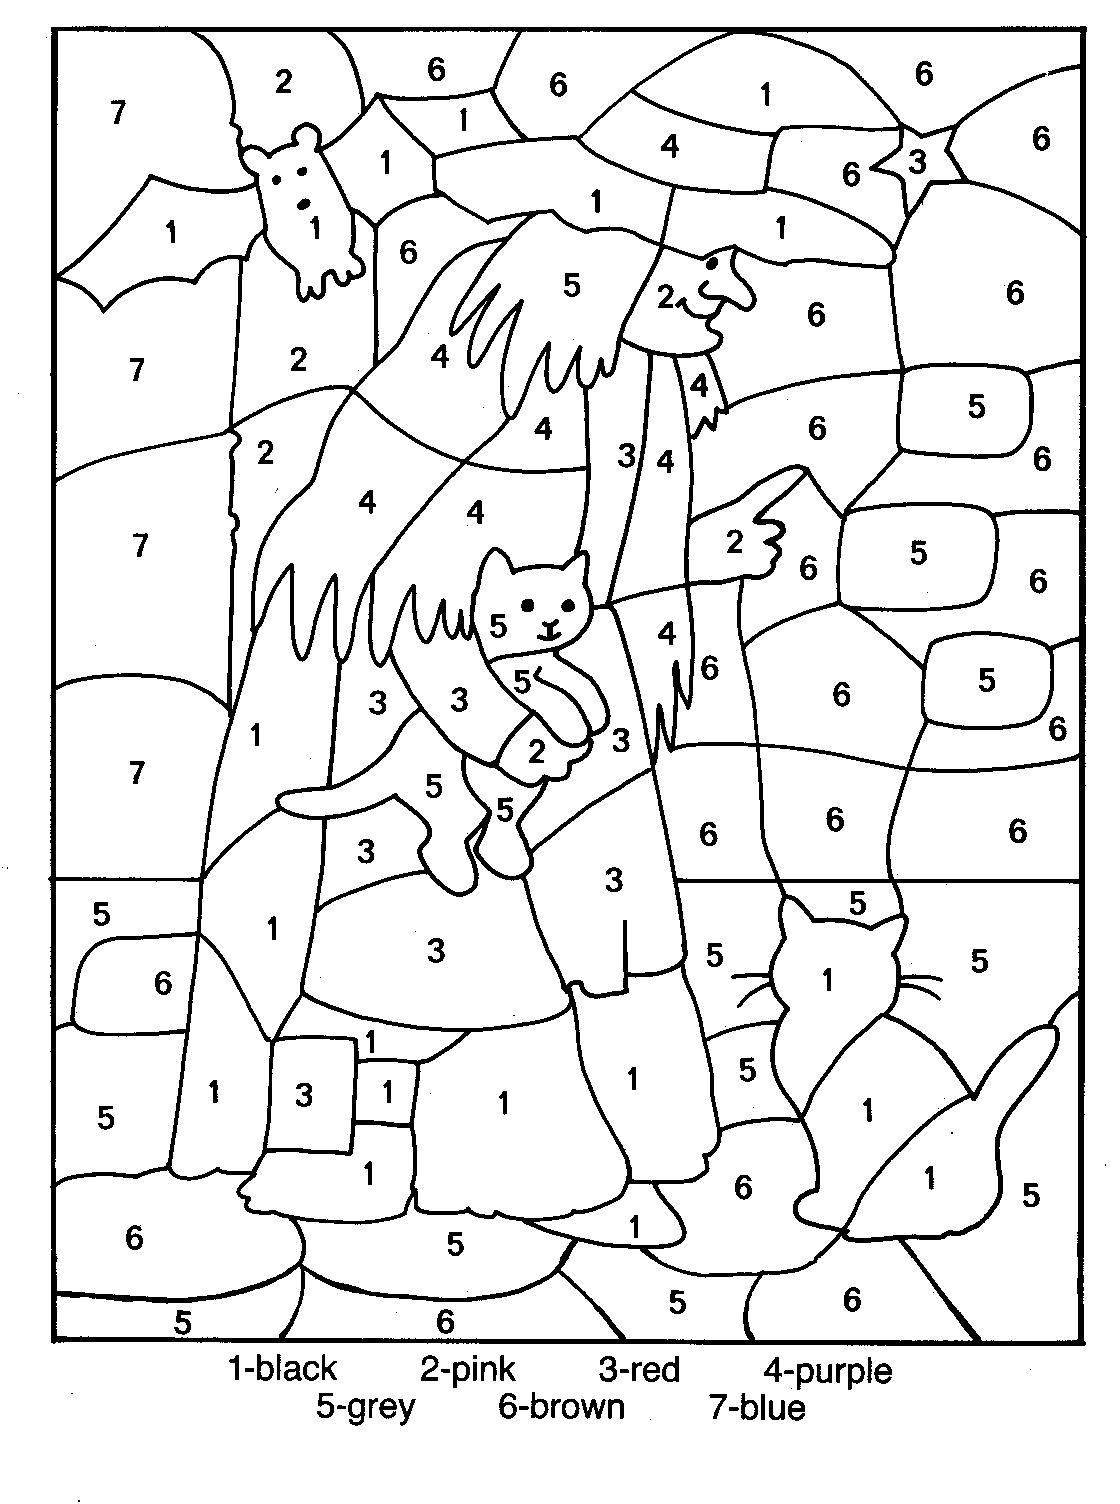 coloring by number pages free printable color by number coloring pages best number coloring by pages